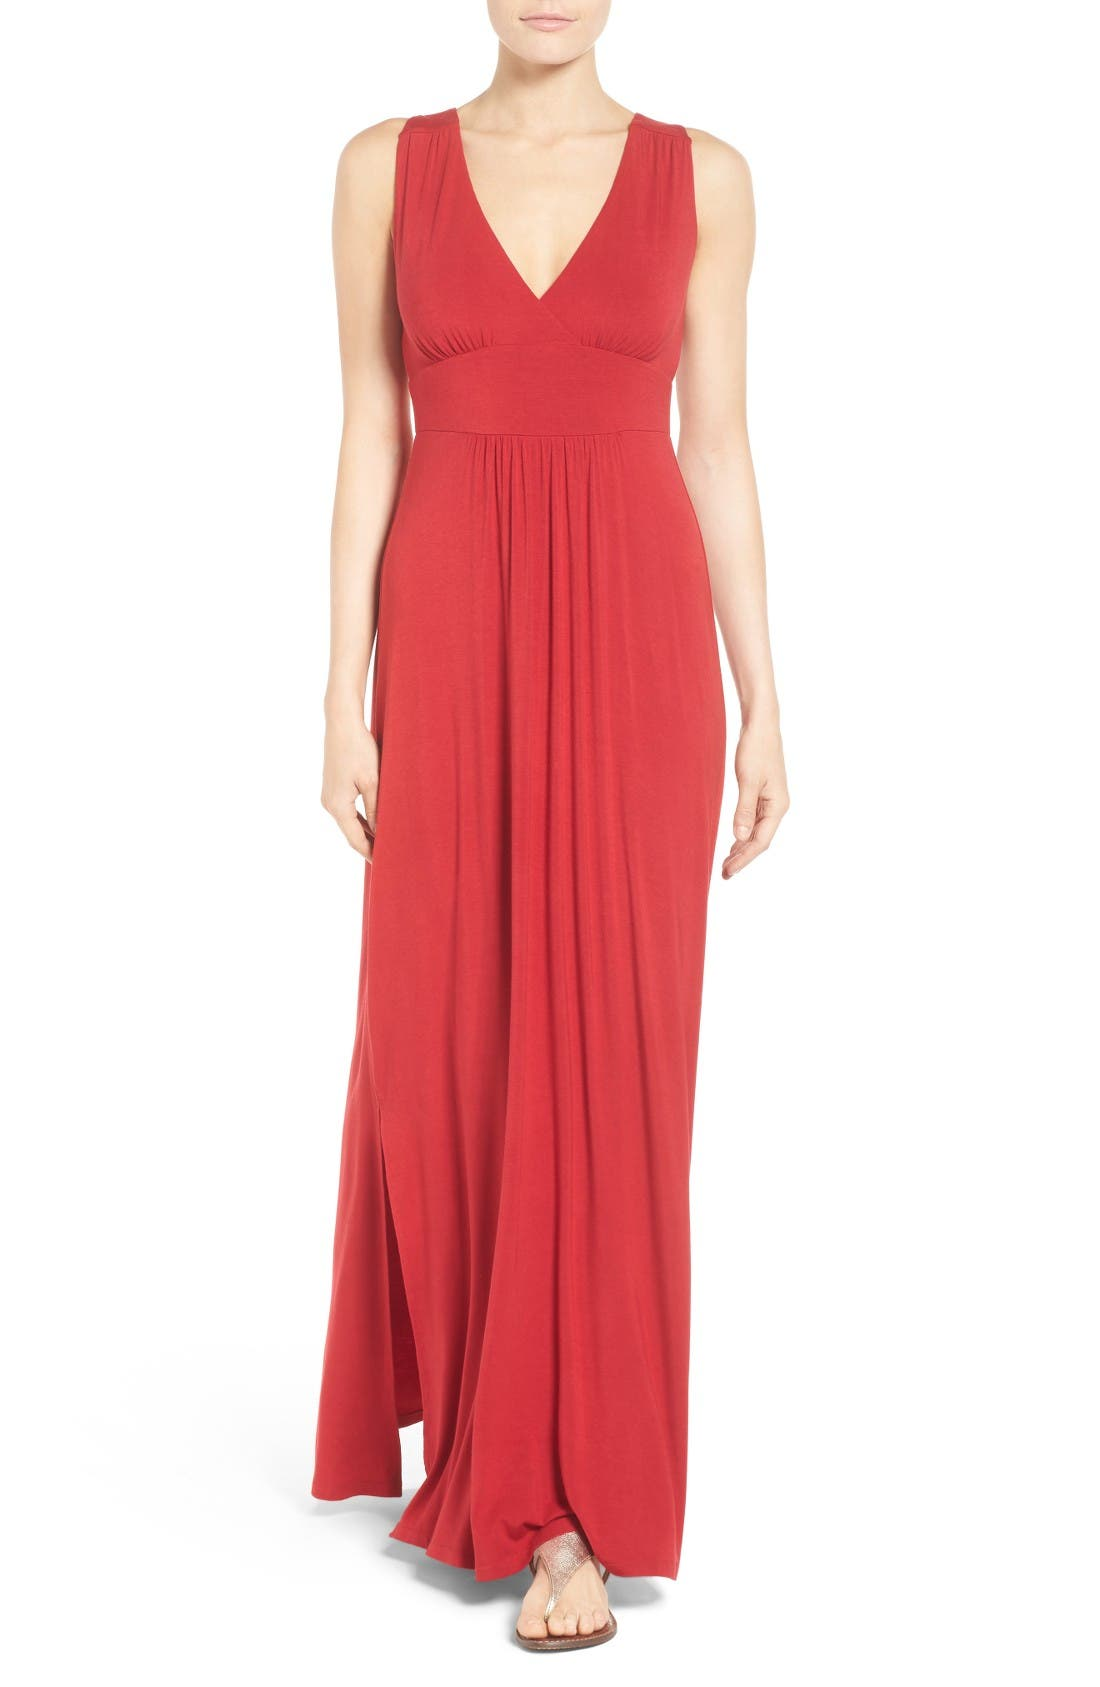 Knit Maxi Dress,                         Main,                         color, Red Chili